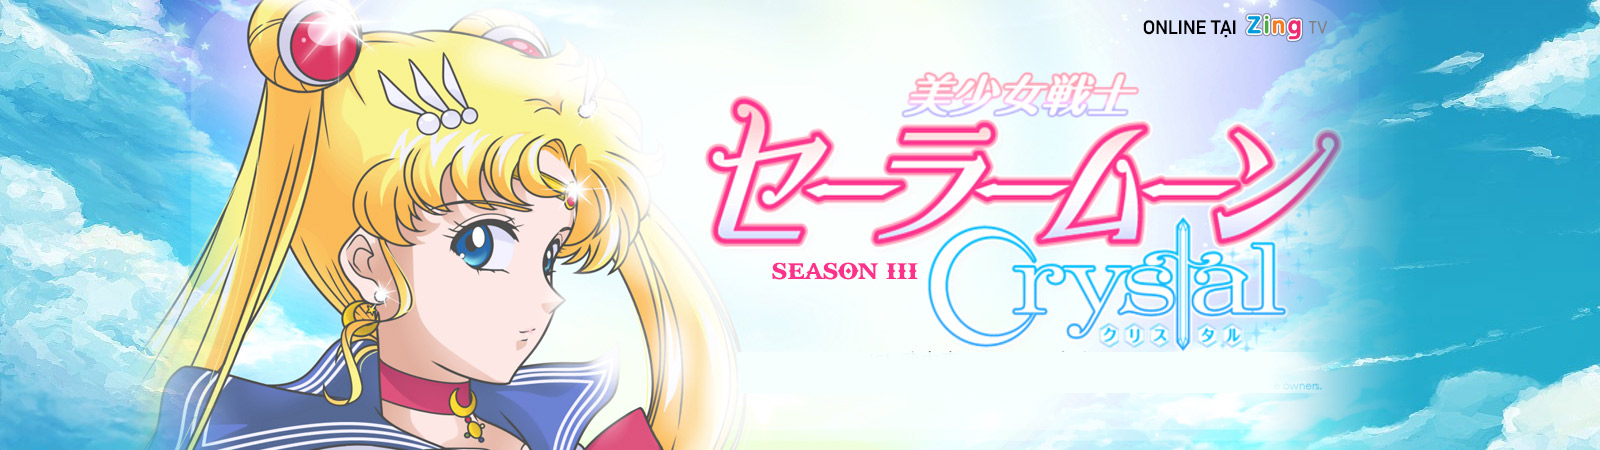 Tập 5 - Bishoujo Senshi Sailor Moon Crystal Season III